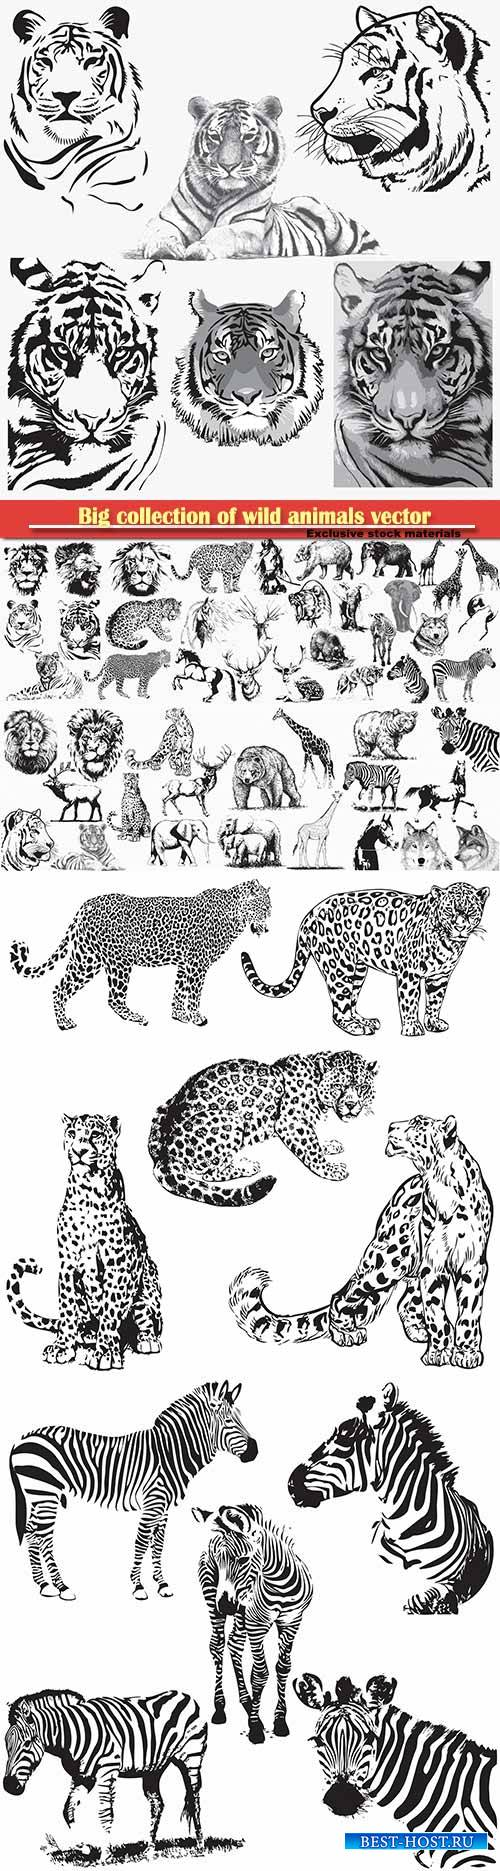 Big collection of wild animals vector illustration